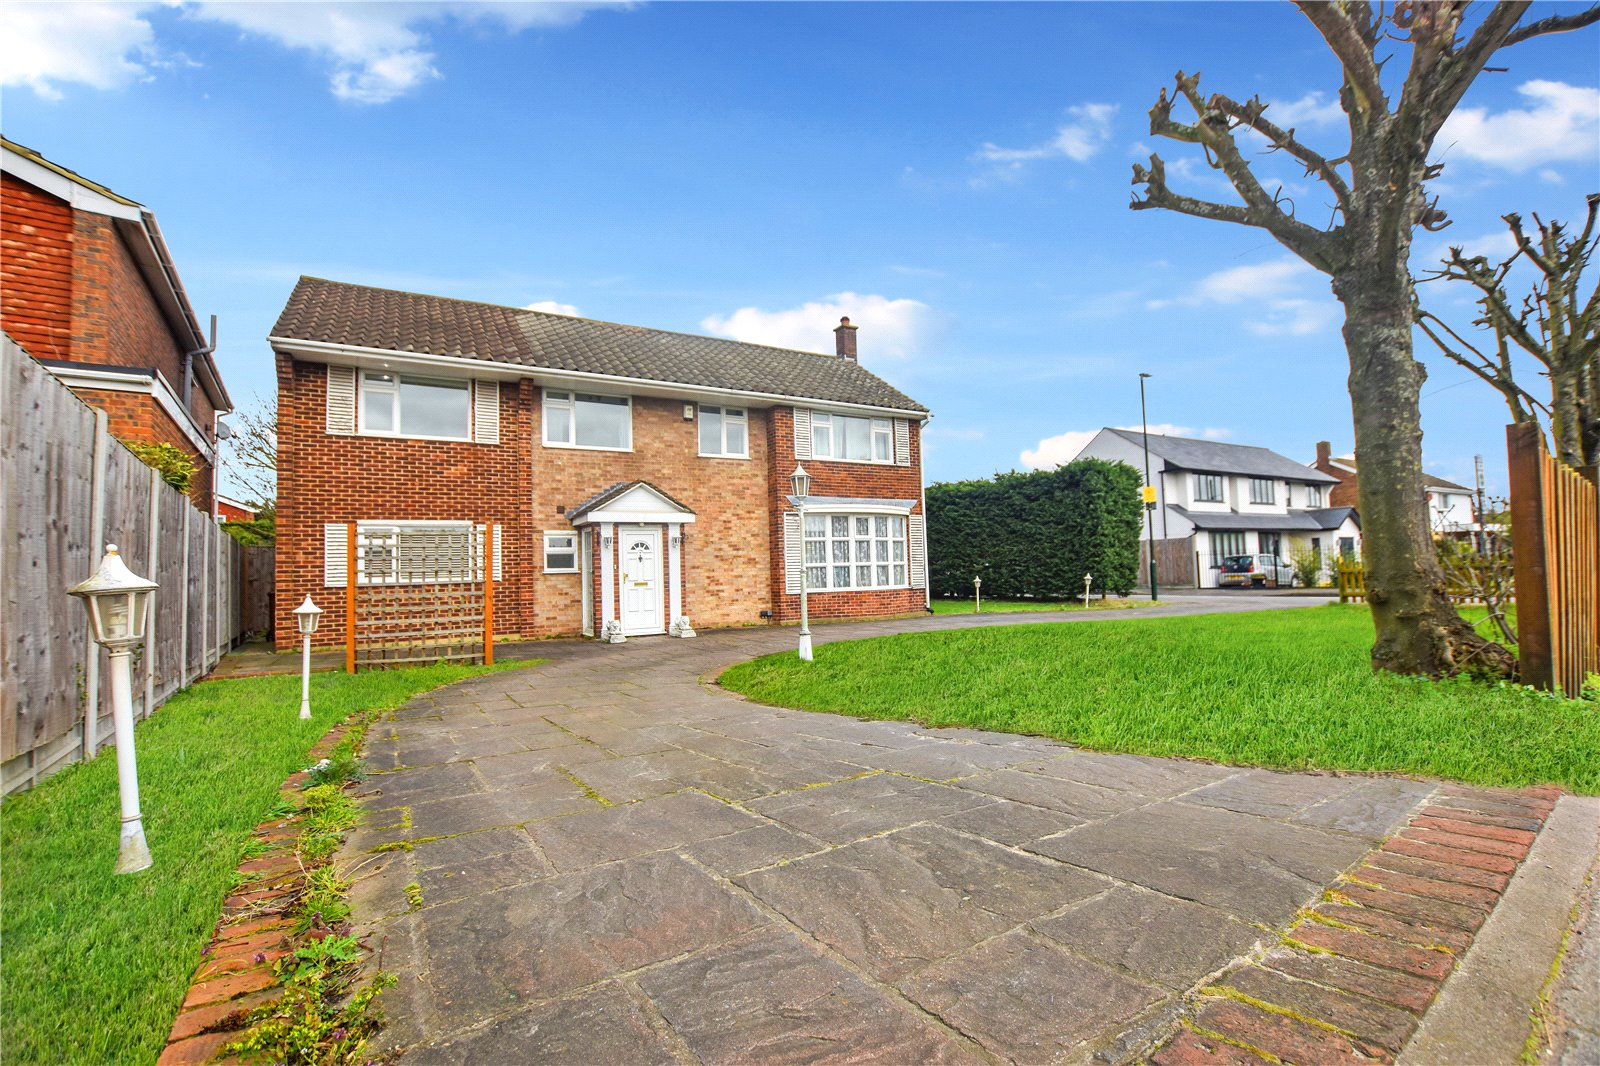 Dartford Road, Bexley, Kent, DA5